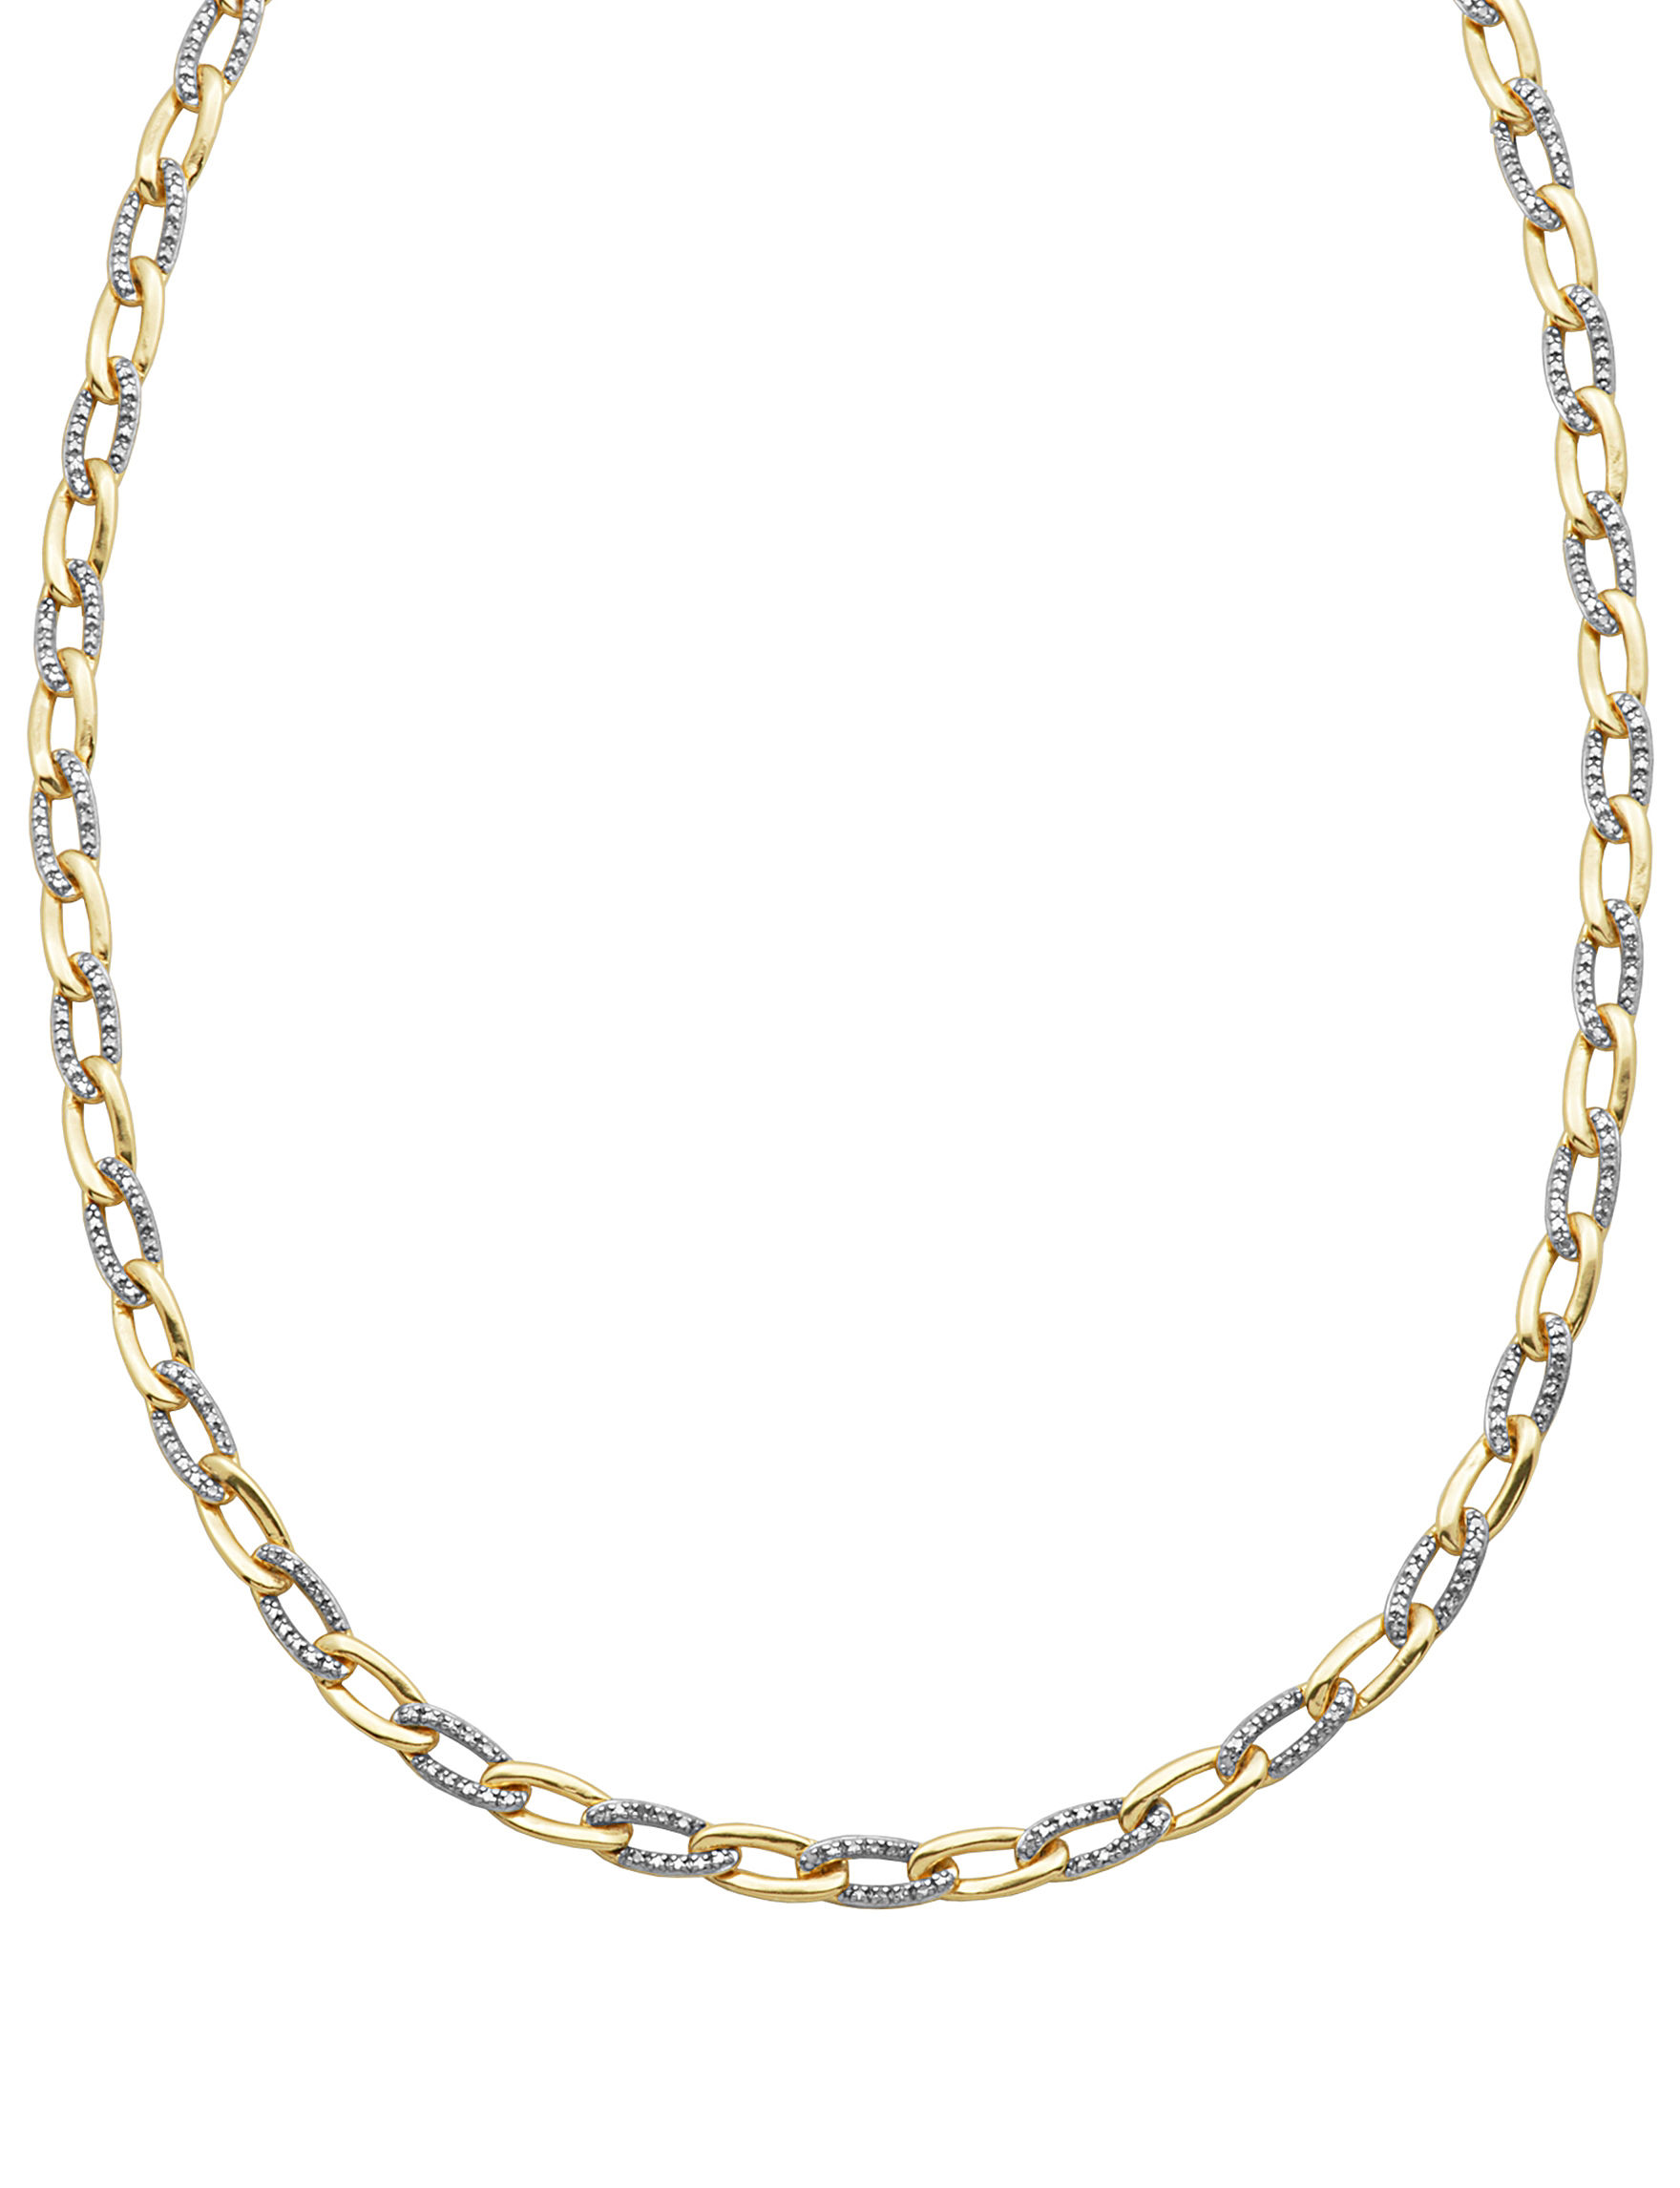 PAJ INC. Gold Necklaces & Pendants Fine Jewelry